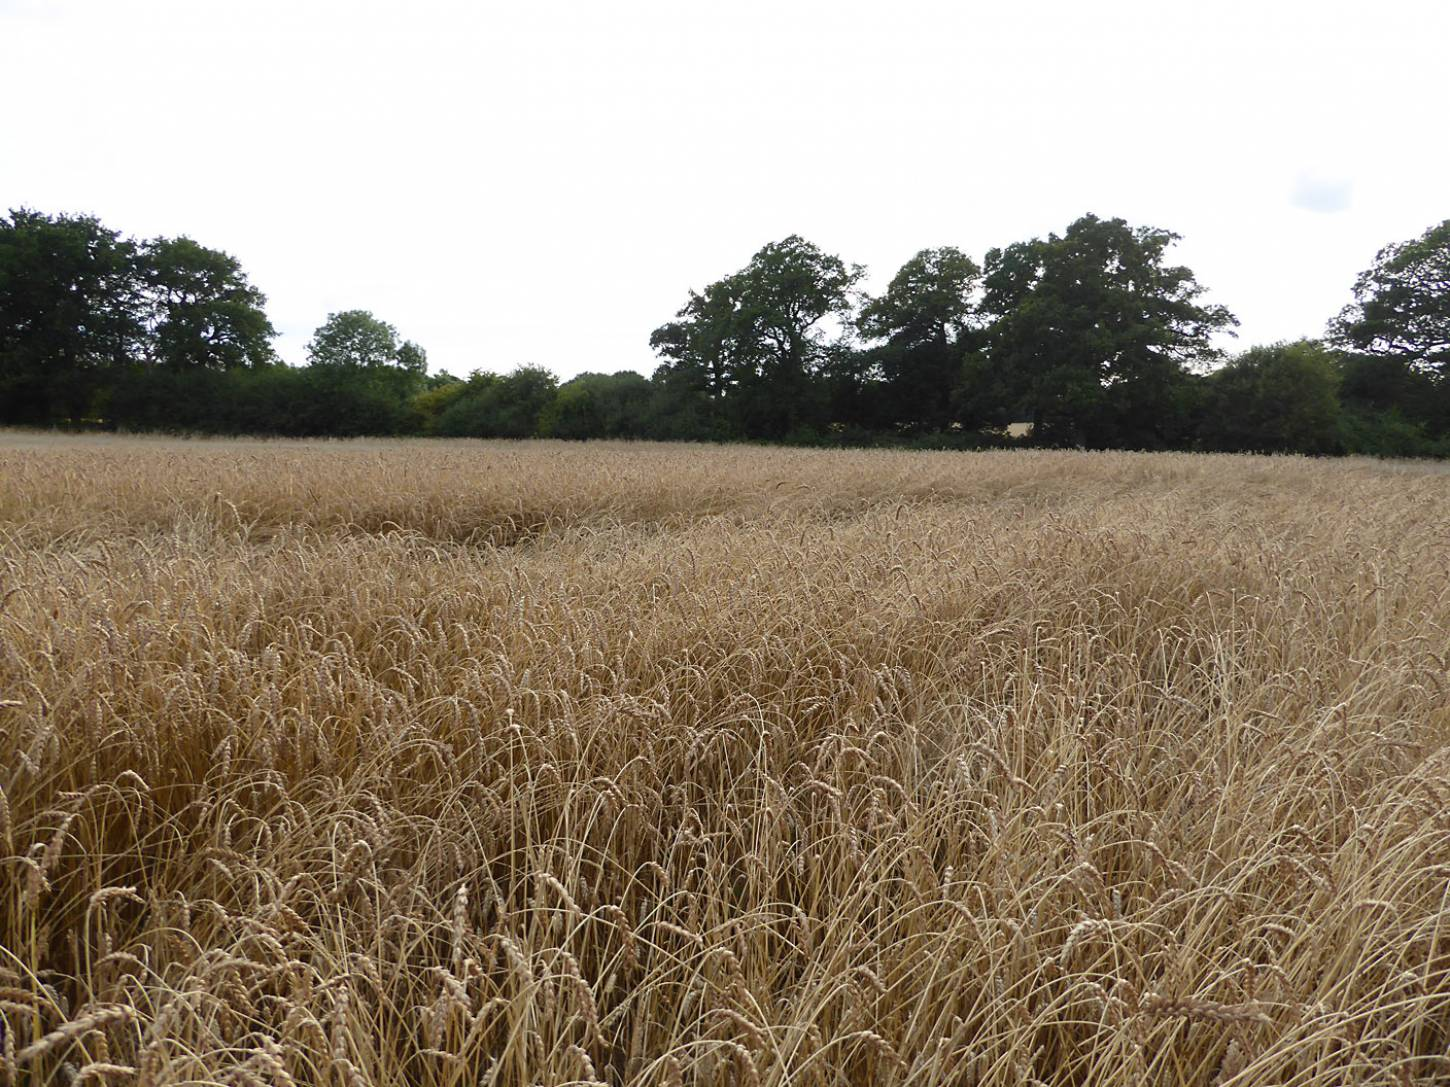 Red Lammas, farm review pre-harvest '17 - 6:29pm&nbsp;1<sup>st</sup>&nbsp;Aug.&nbsp;'17  <a href='http://maps.google.com/?t=h&q=51.209397,-0.086144&z=18&output=embed' target=_blank><img src='http://www.brockwell-bake.org.uk/img/marker.png' style='border:none;vertical-align:top' height=16px></a>